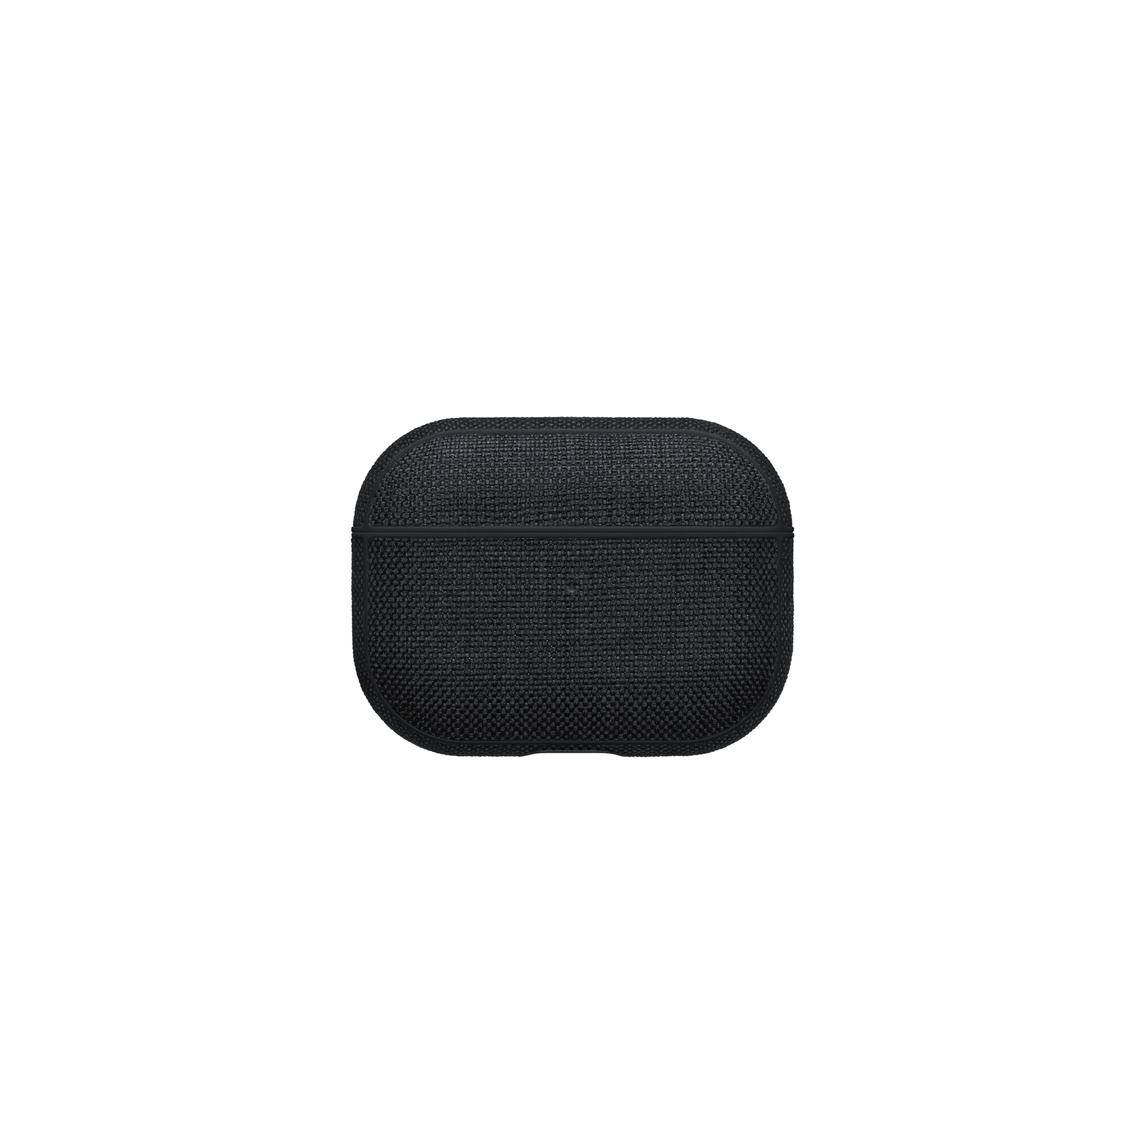 Incase Airpods Pro Case With Woolenex Black Apple